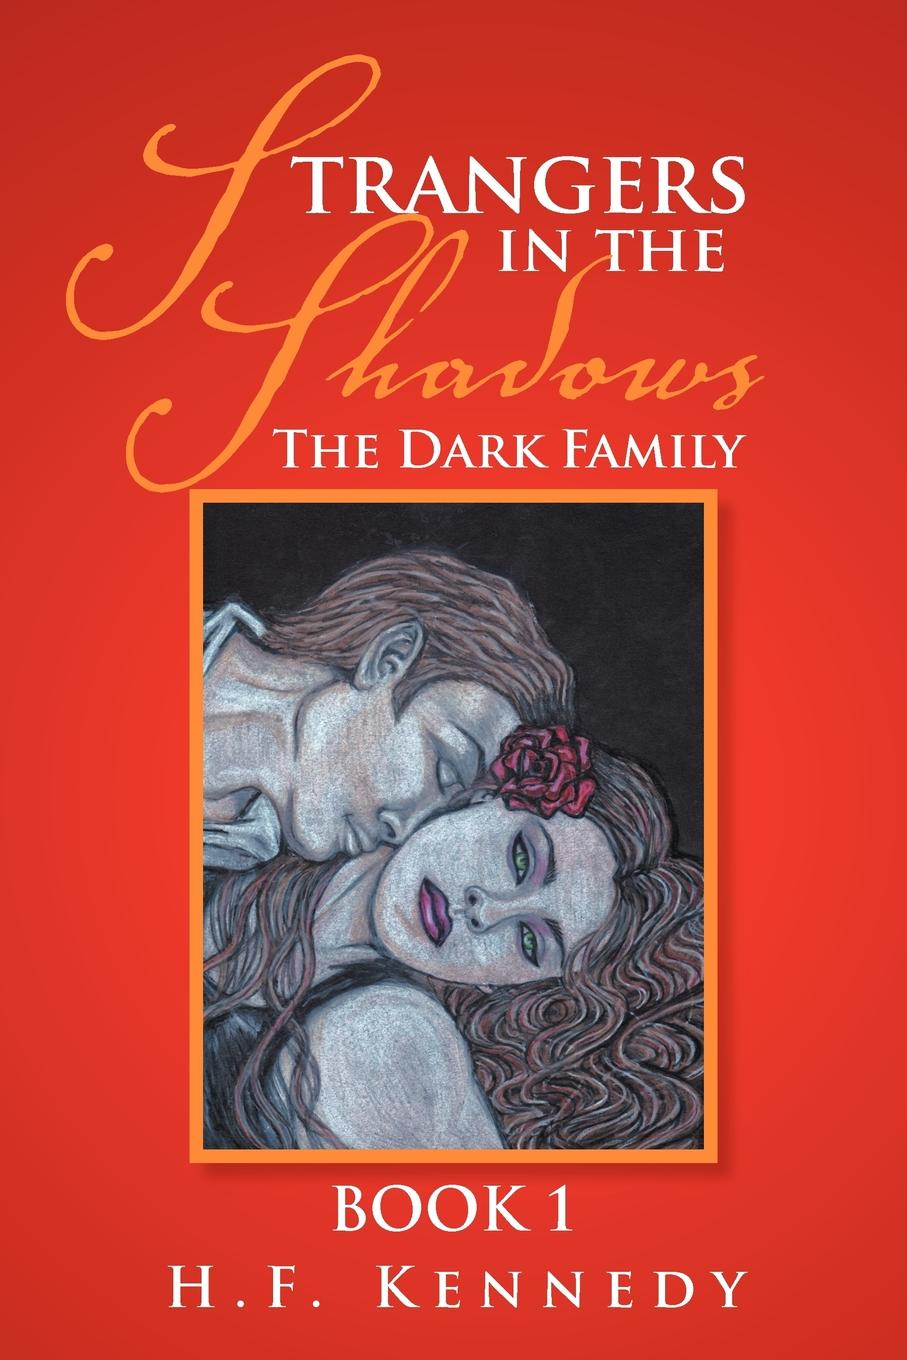 H. F. Kennedy Strangers in the Shadows. The Dark Family Book 1